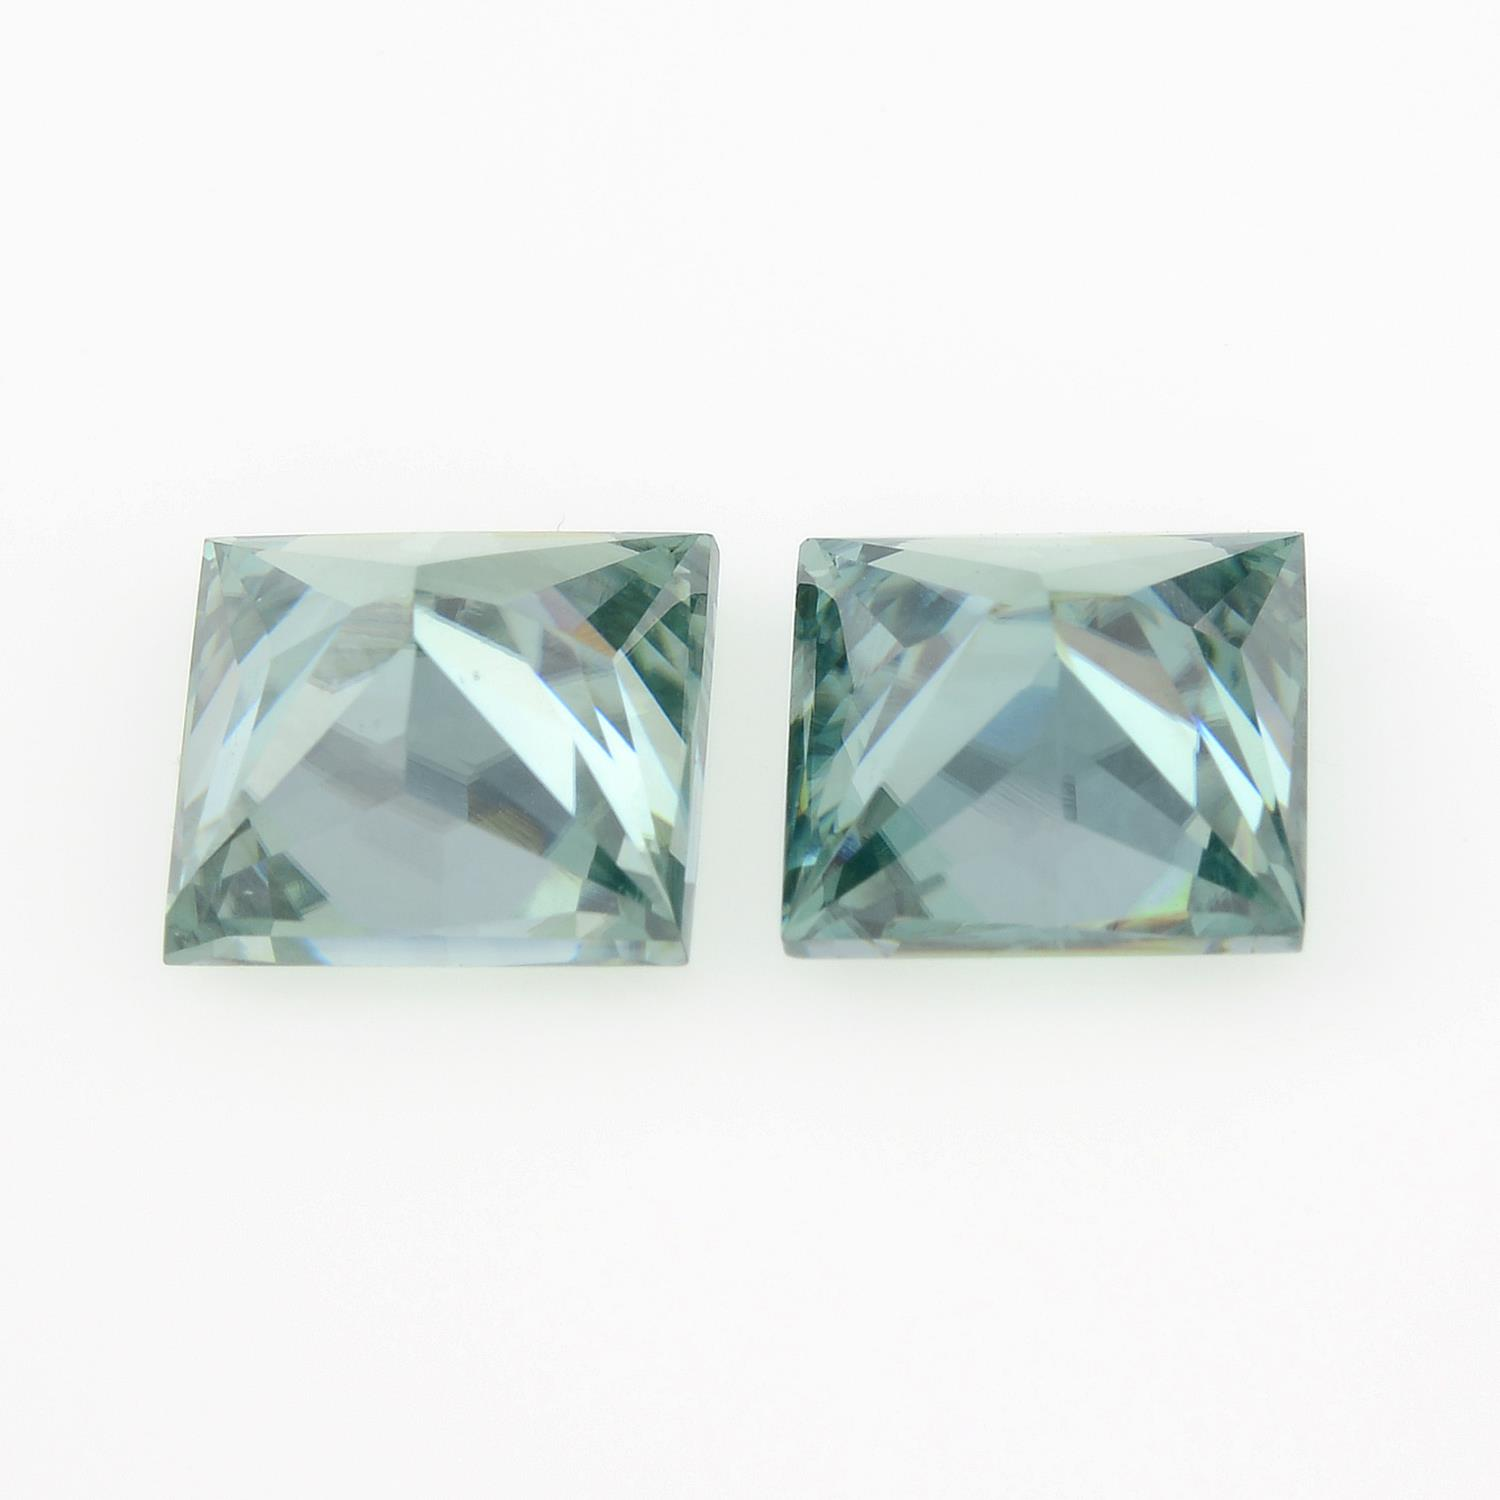 A pair of square-shape green synthetic moissanite, total weight 4.26cts. - Image 2 of 2